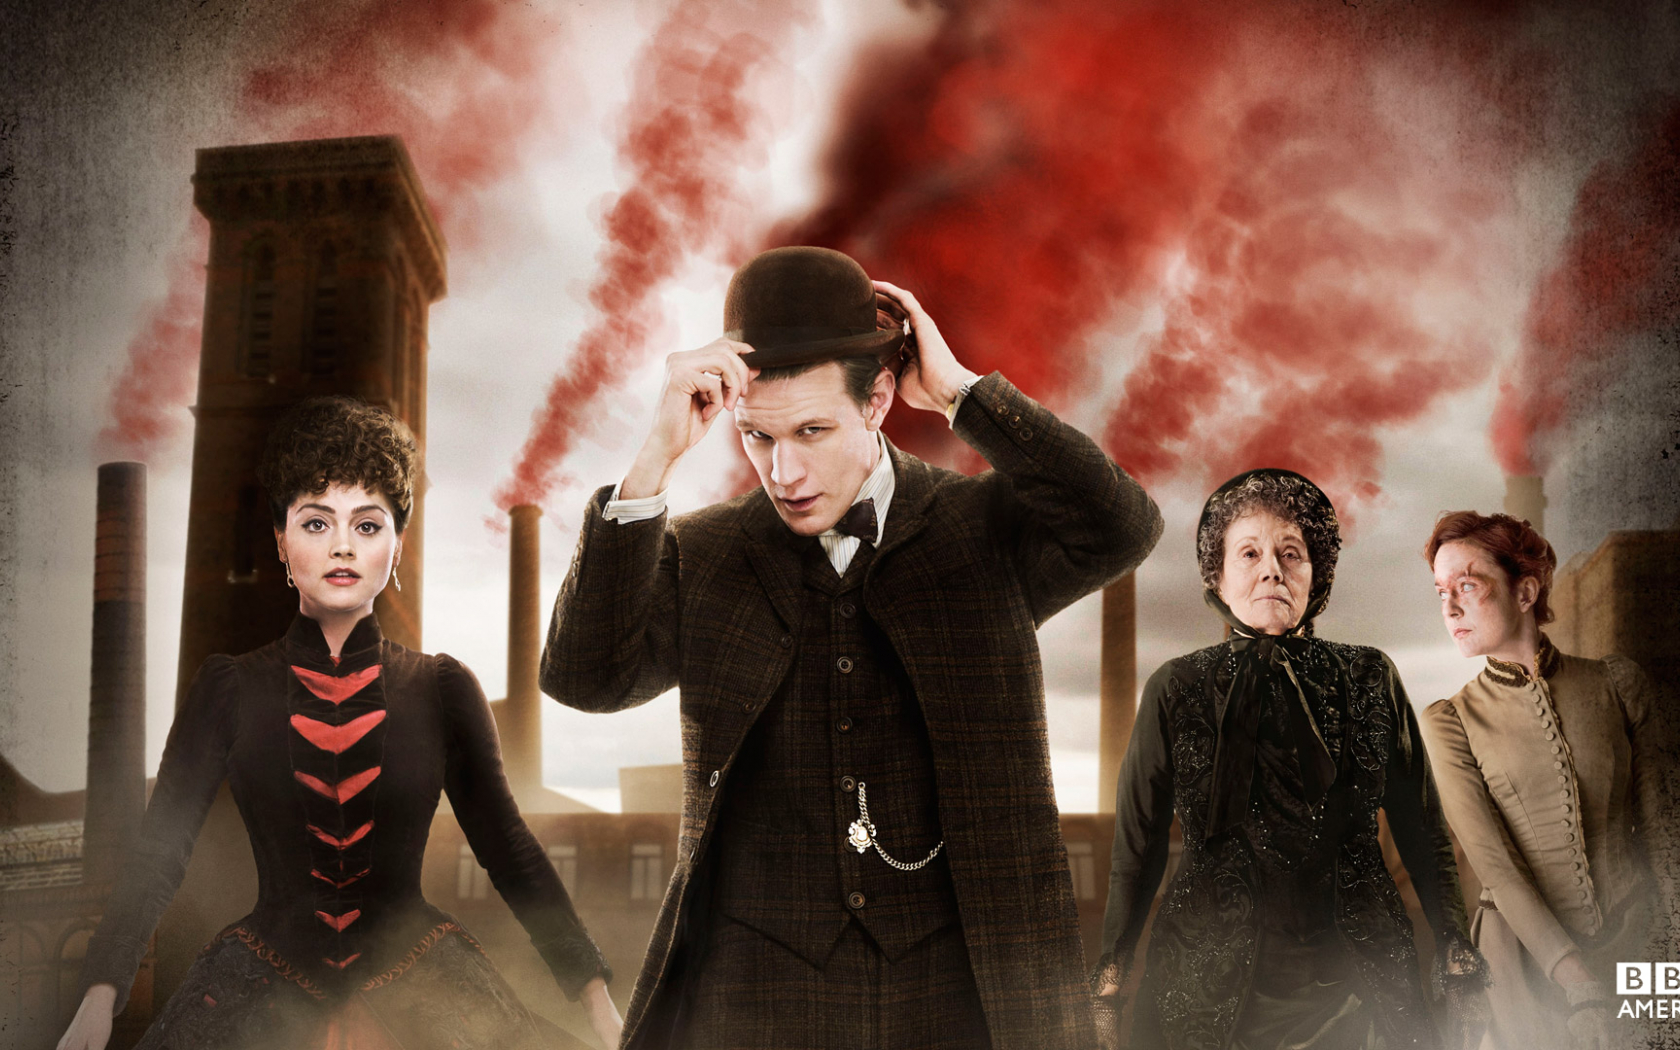 Free Download Horror Season 7 Wallpapers Extras Doctor Who Bbc